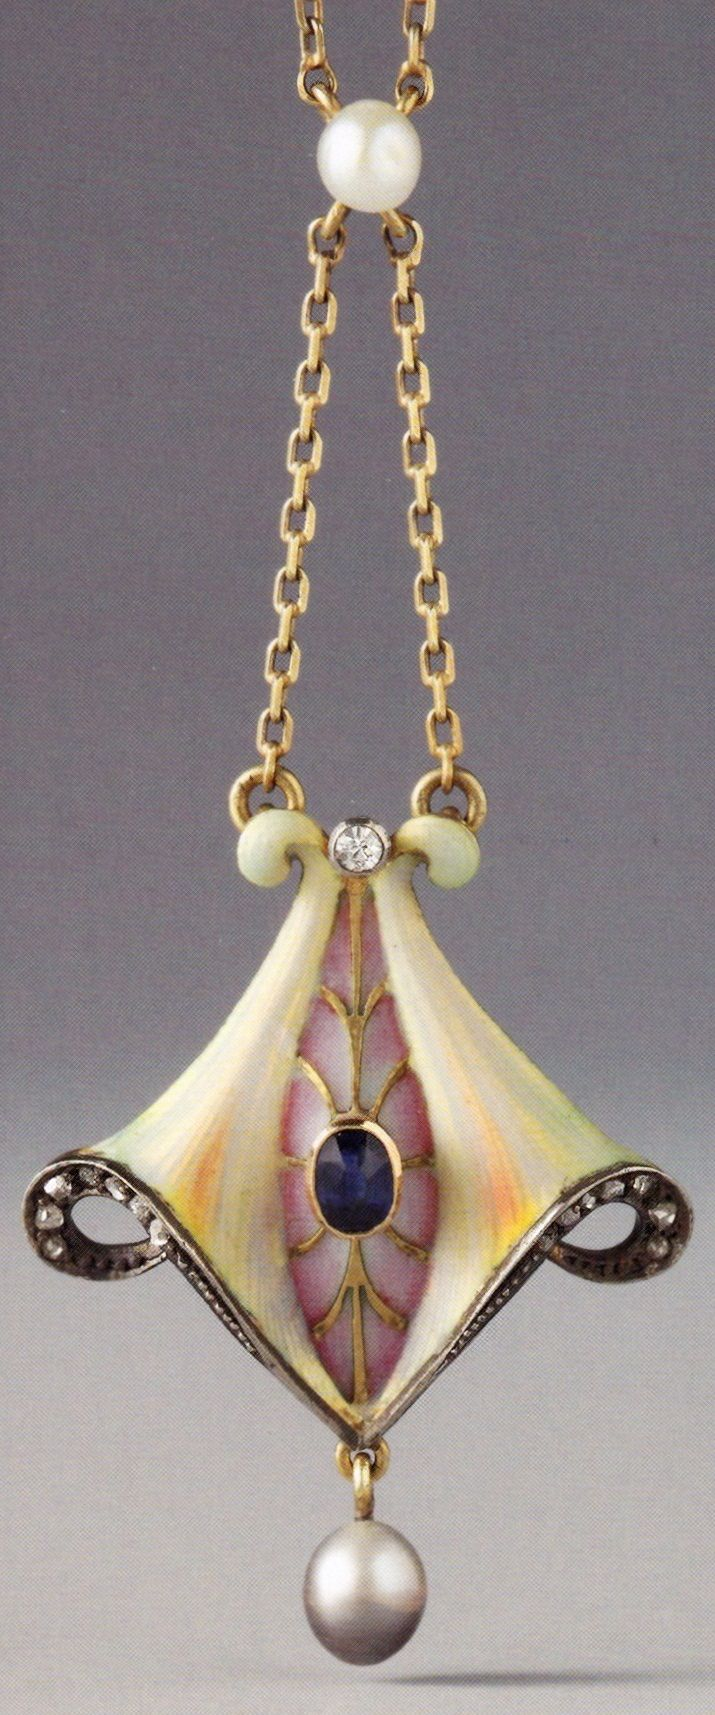 A Jugendstil / Art Nouveau pendant, German, 1903-1910. Composed of gold, silver…